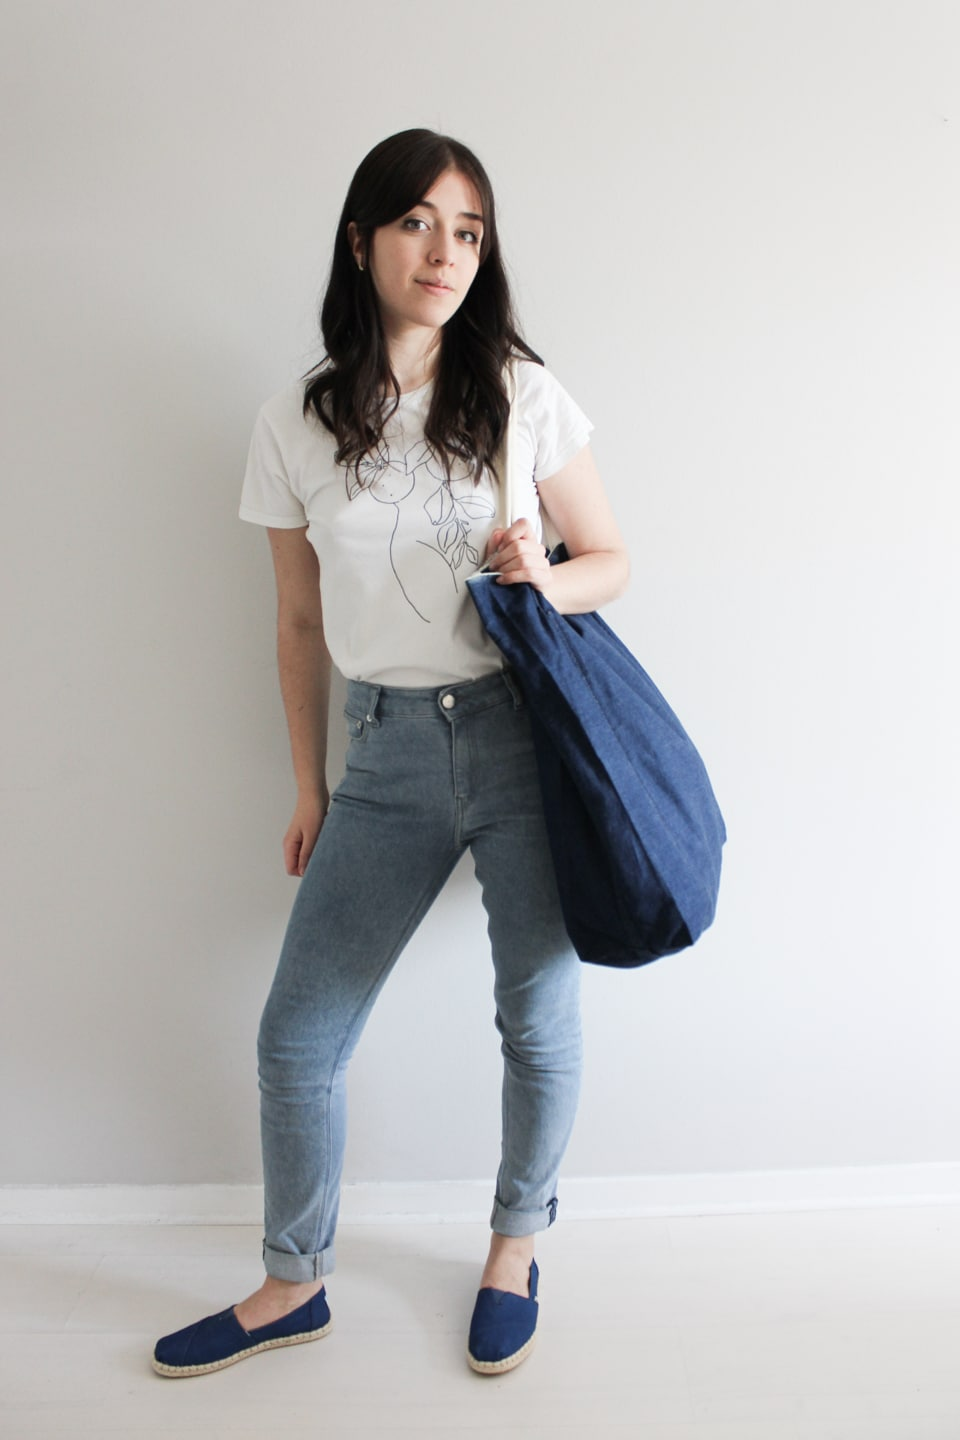 Besma wears white t-shirt, blue jeans, and blue TOMS EarthWise flat shoes